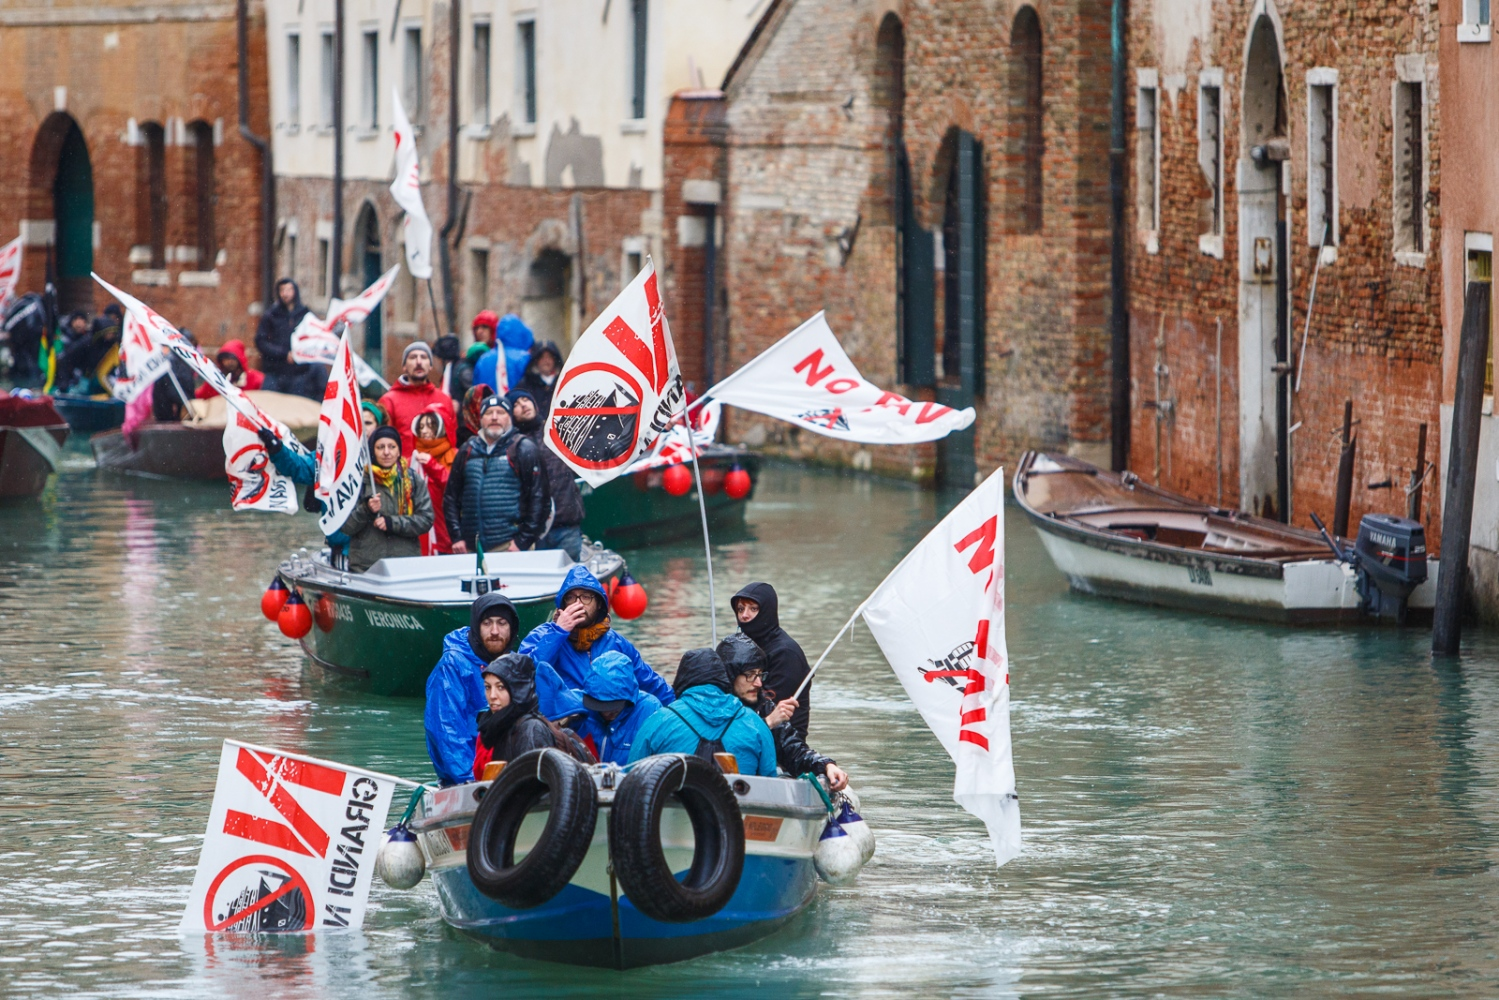 No Big Ships protest in Venice Protesters on small power boats protest against big ships in Venice's canals on March 8. The group hopes to bring attention to the environmental impact that large ships have on the city.